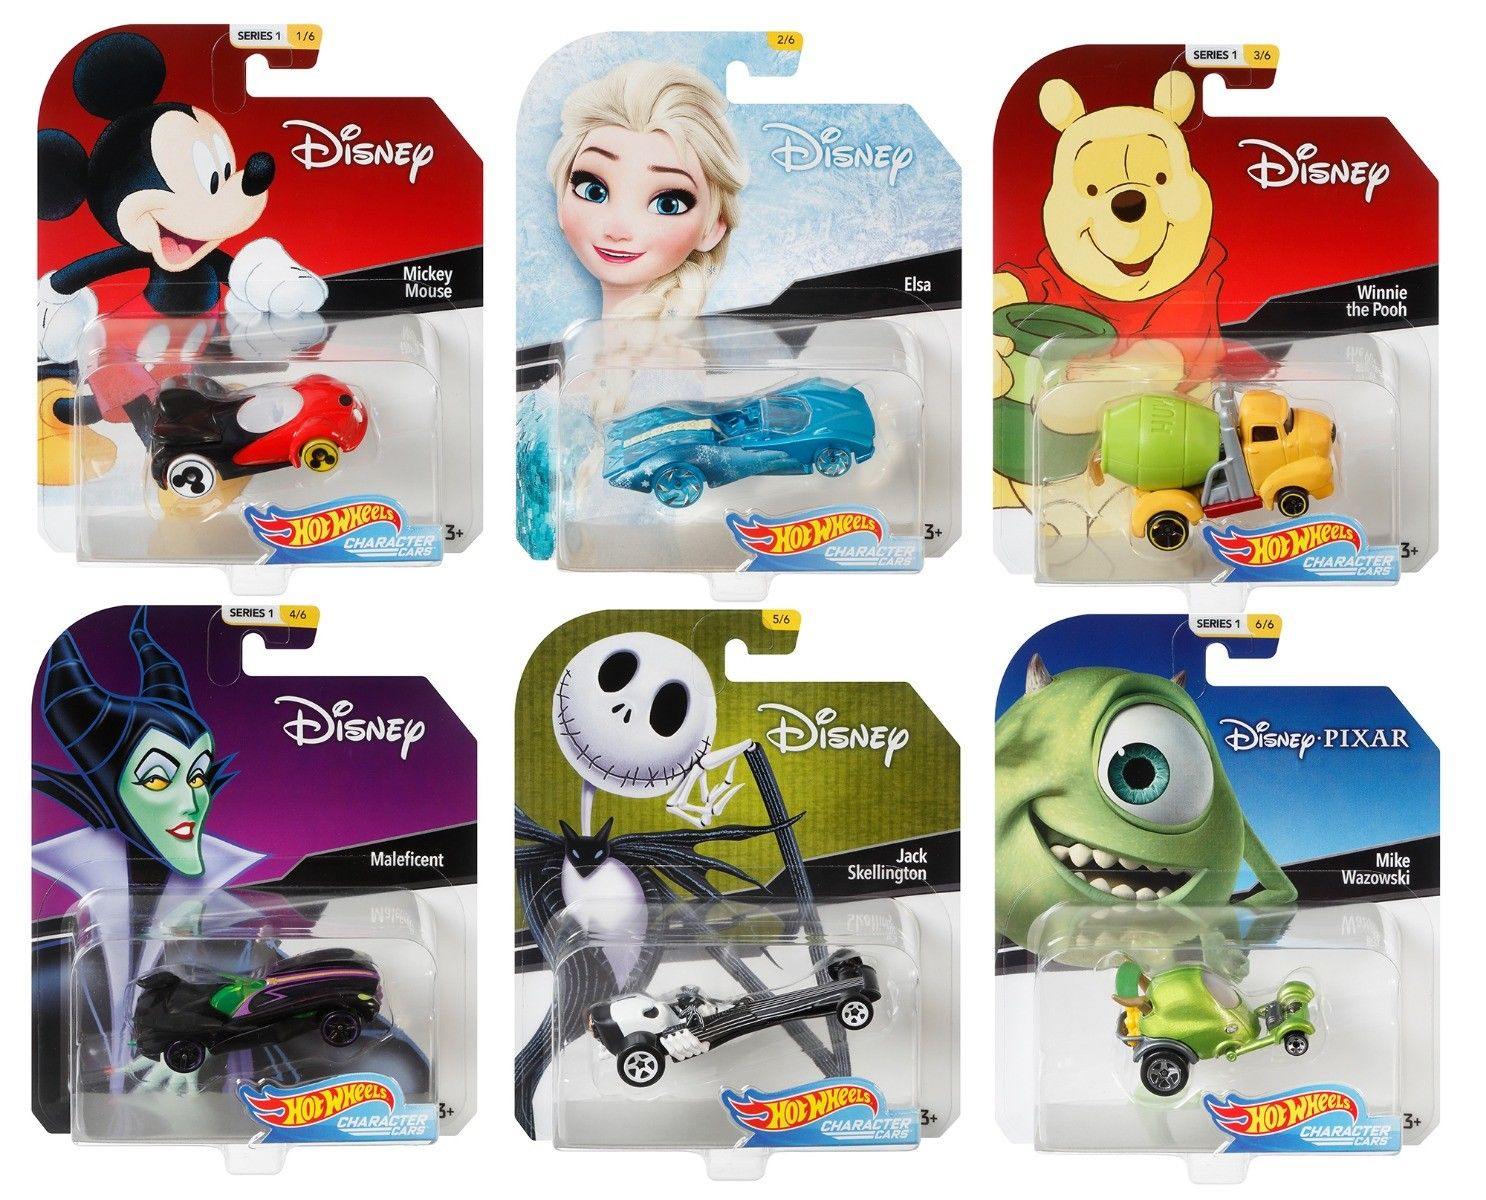 2018 Hot Wheels 1 64 Disney Character Cars Set of 6 Collectible Die Cast Toy Cars by